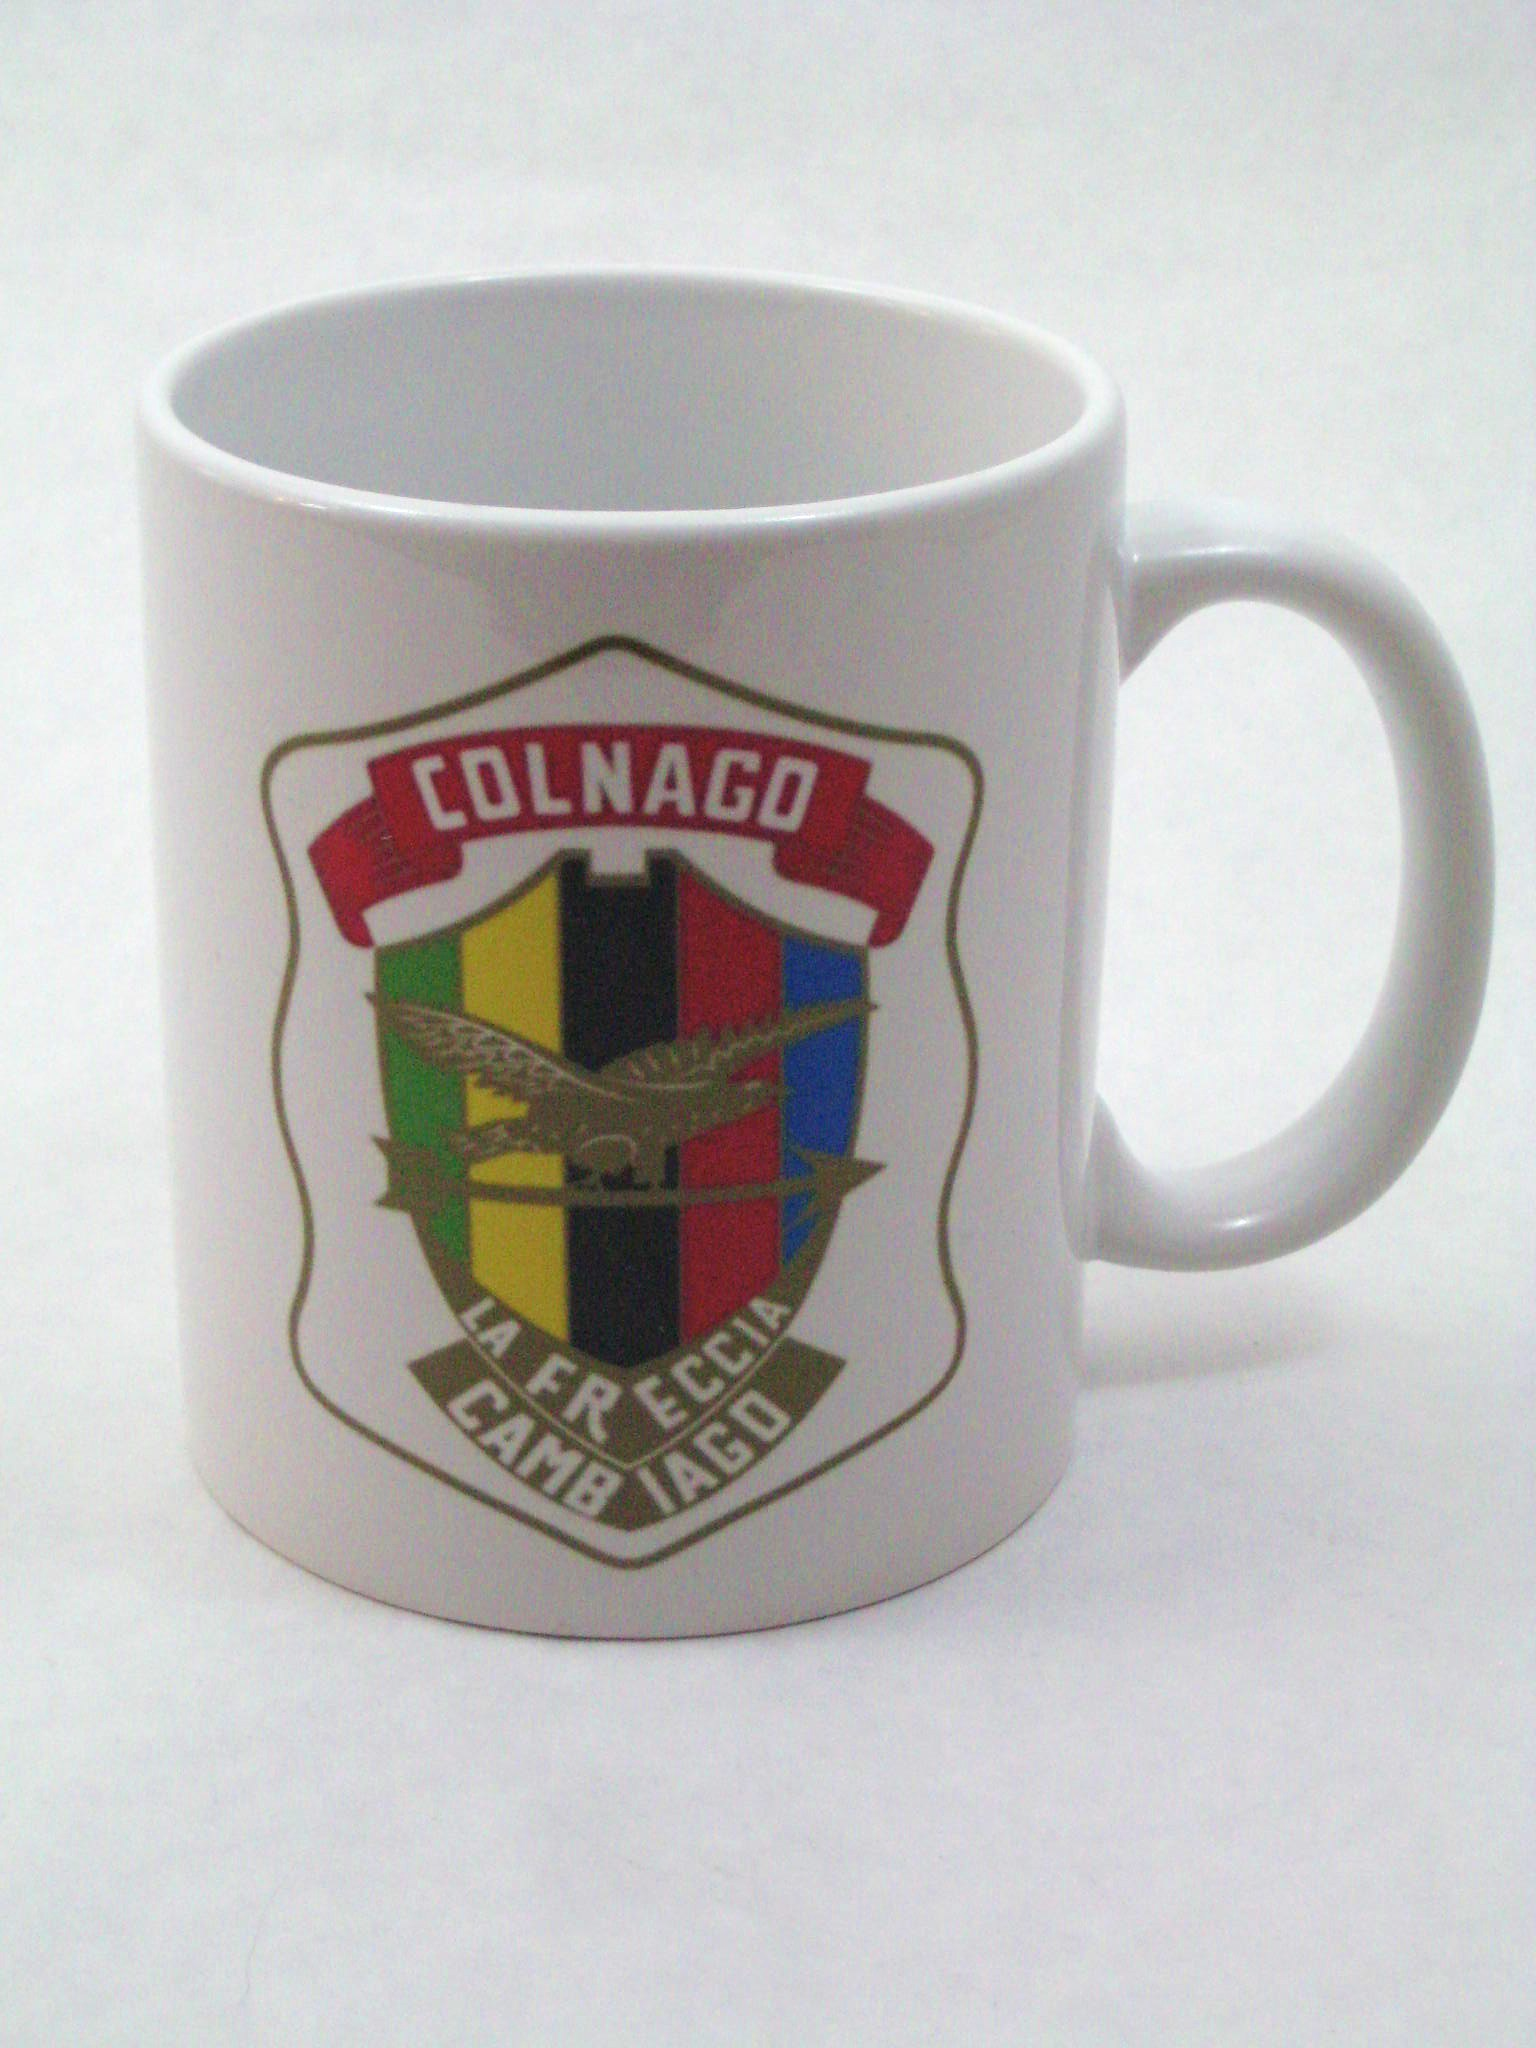 Colnago coffee mugs for sale at Classic Cycle